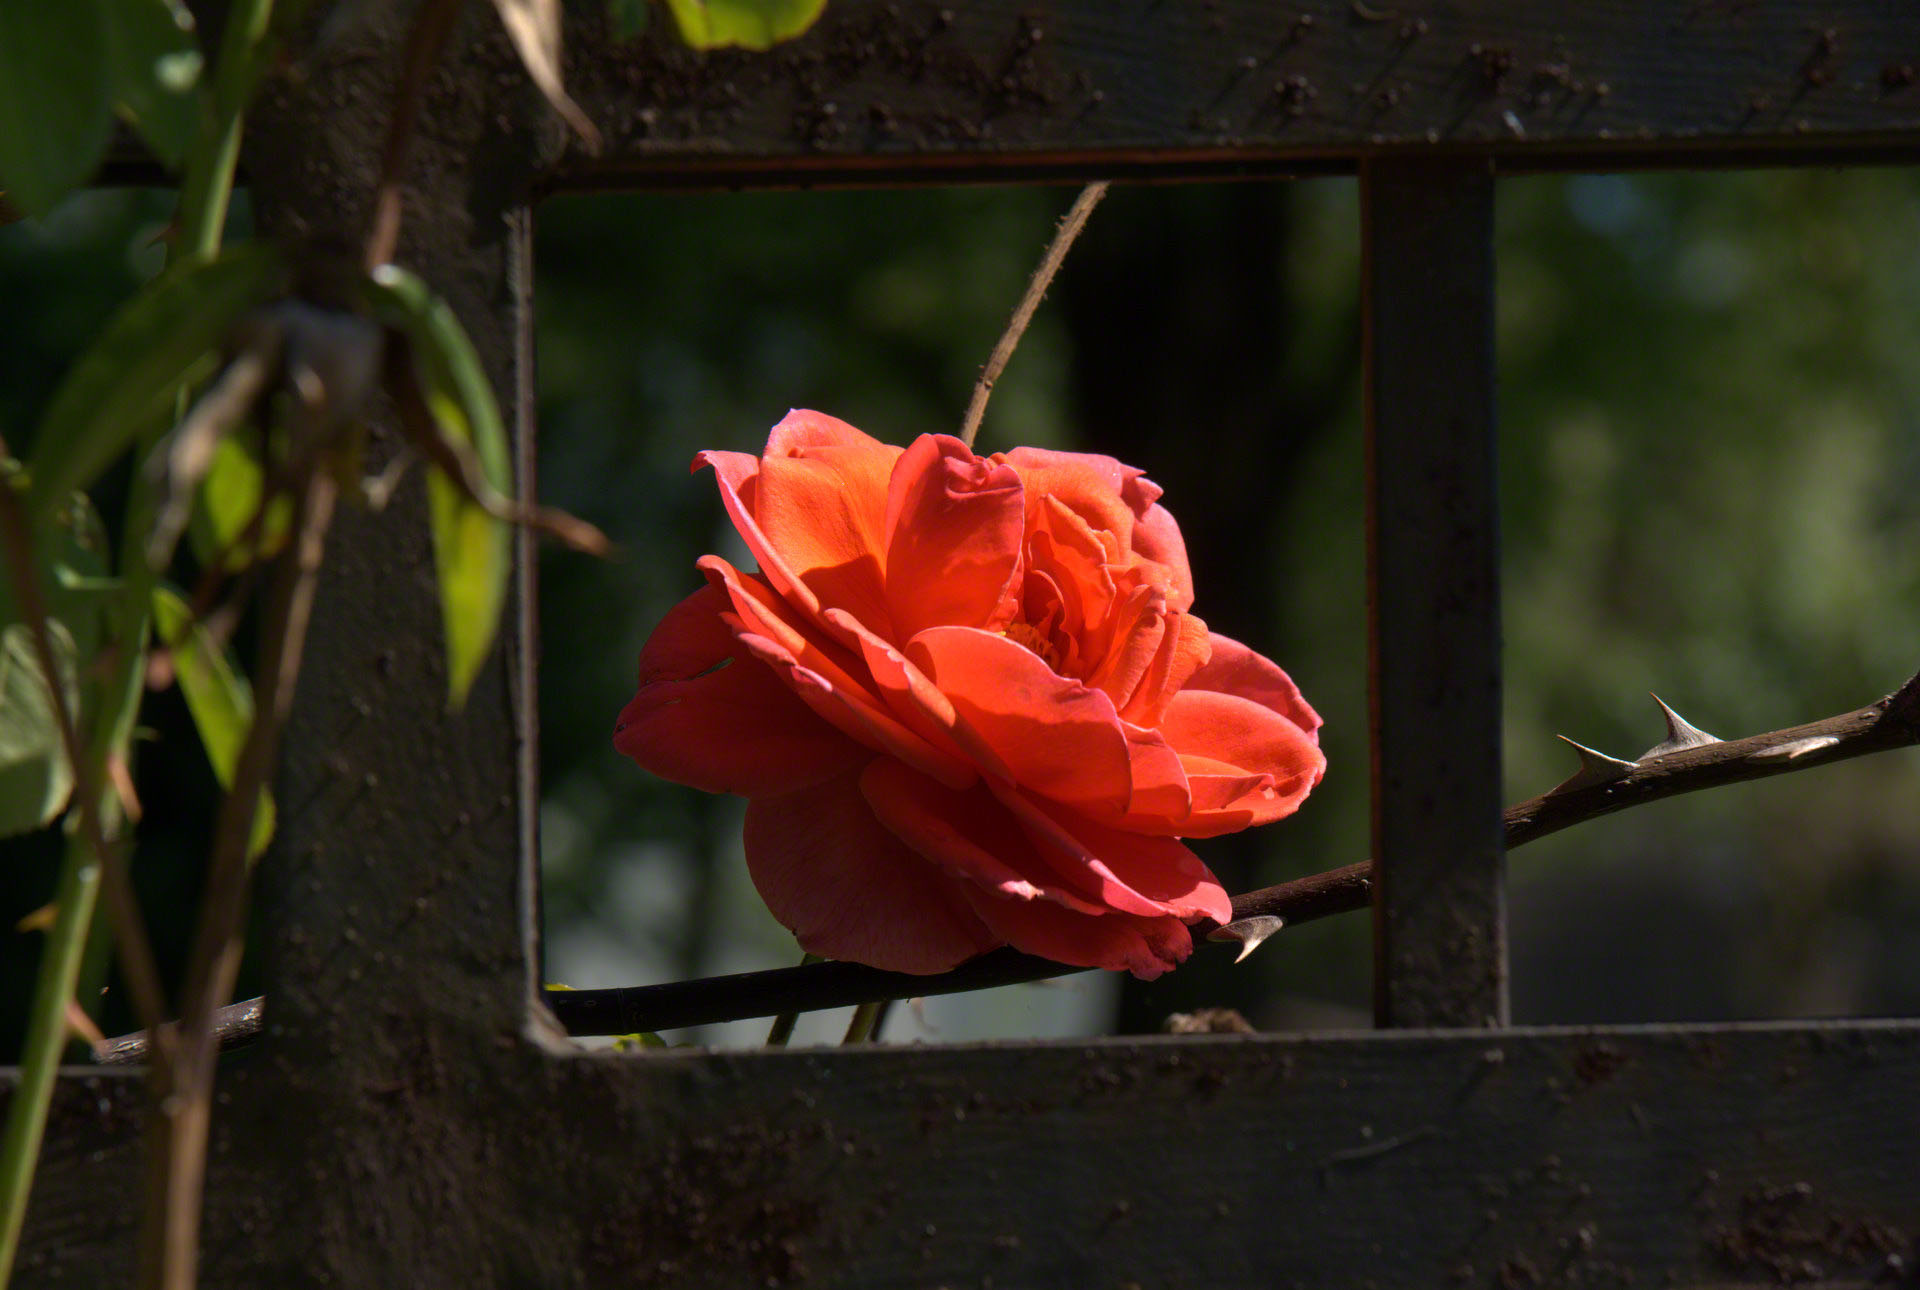 a rose in cage